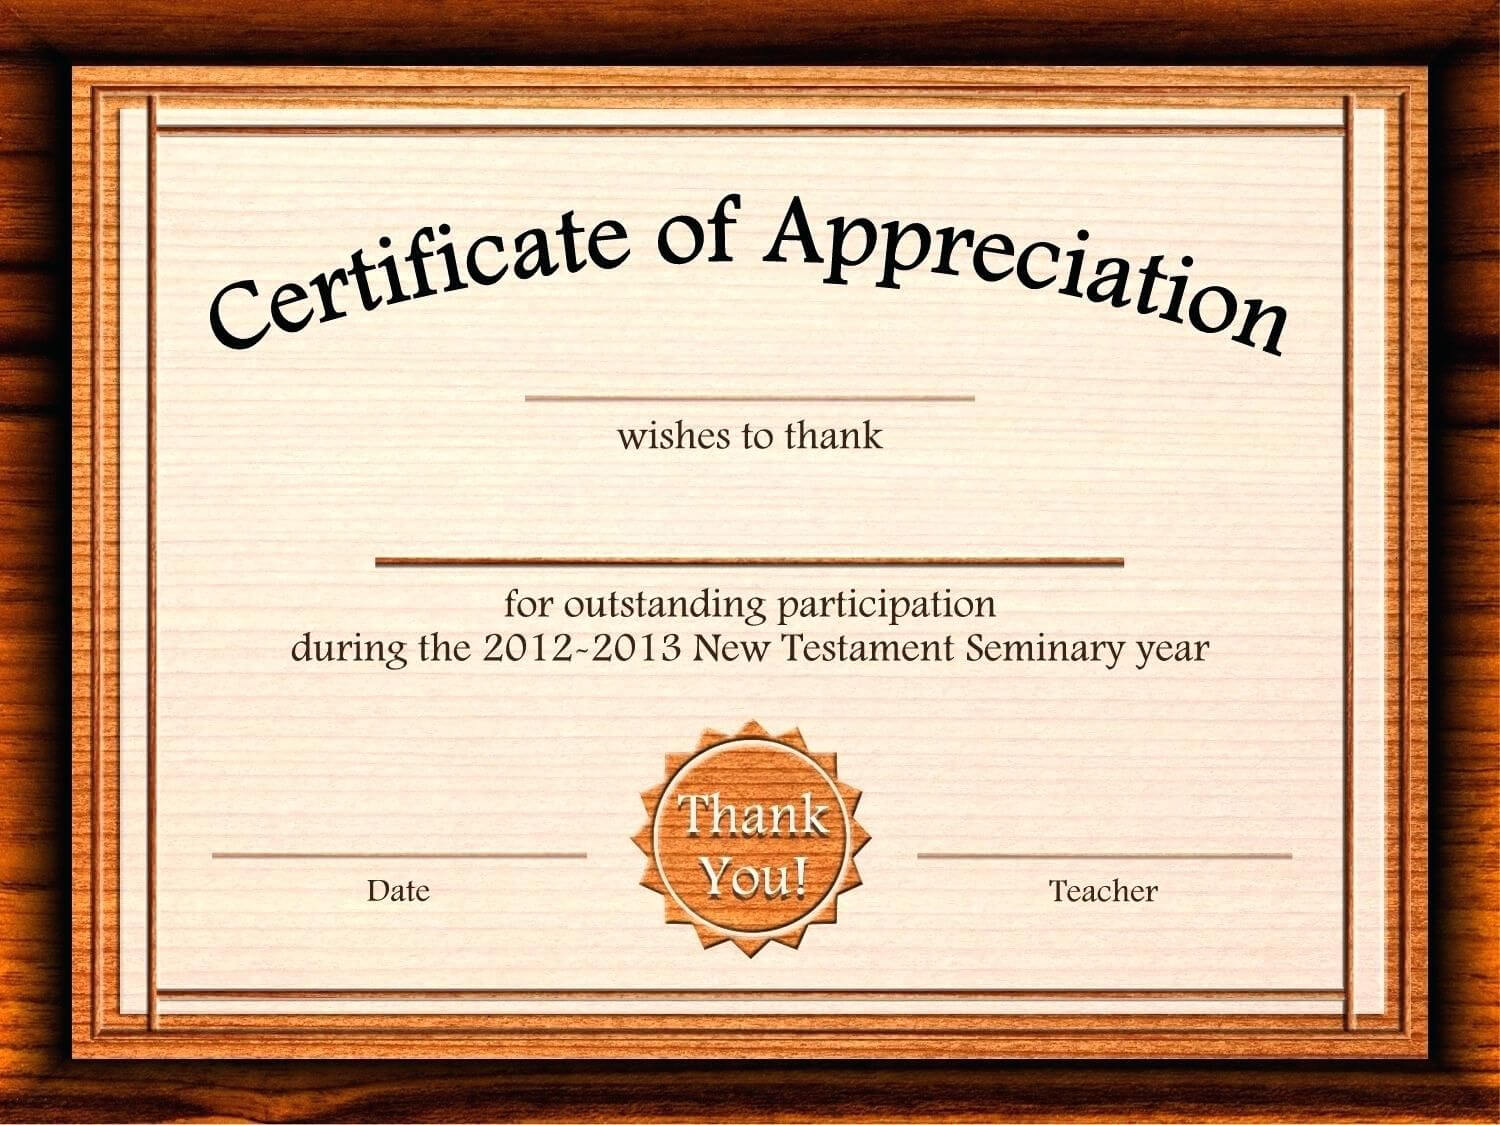 Template: Editable Certificate Of Appreciation Template Free For Certificate Of Appreciation Template Free Printable